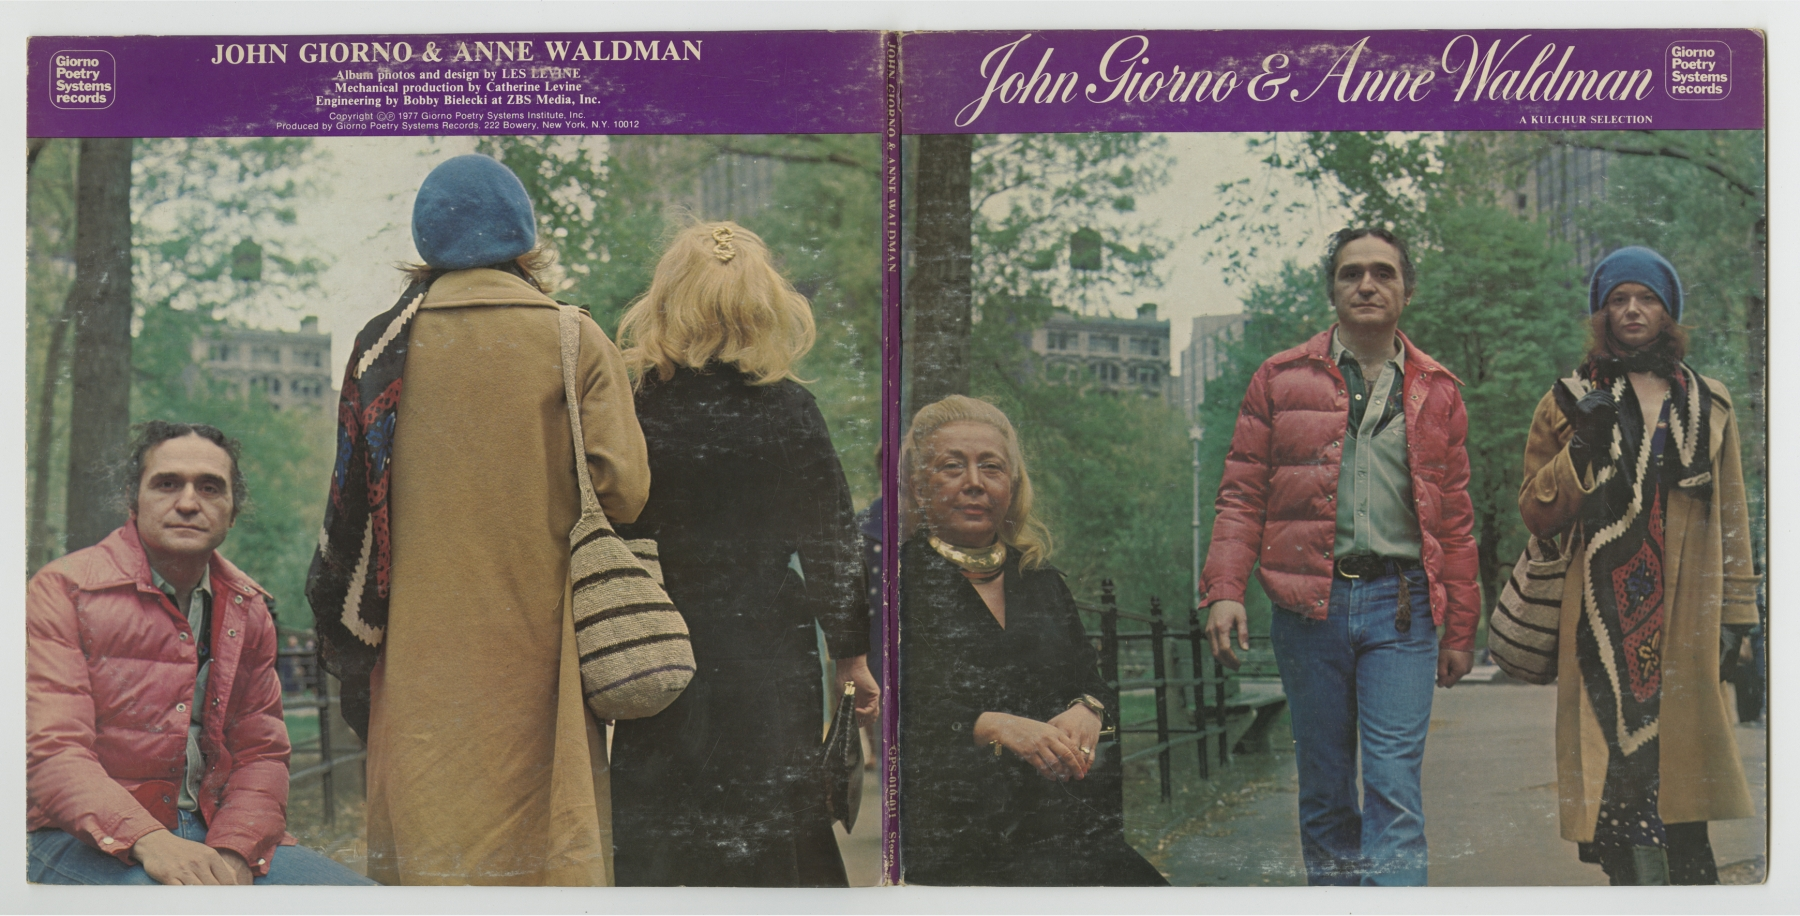 John Giorno and Anne Waldman: A Kulchur Selection (1977), front and back covers